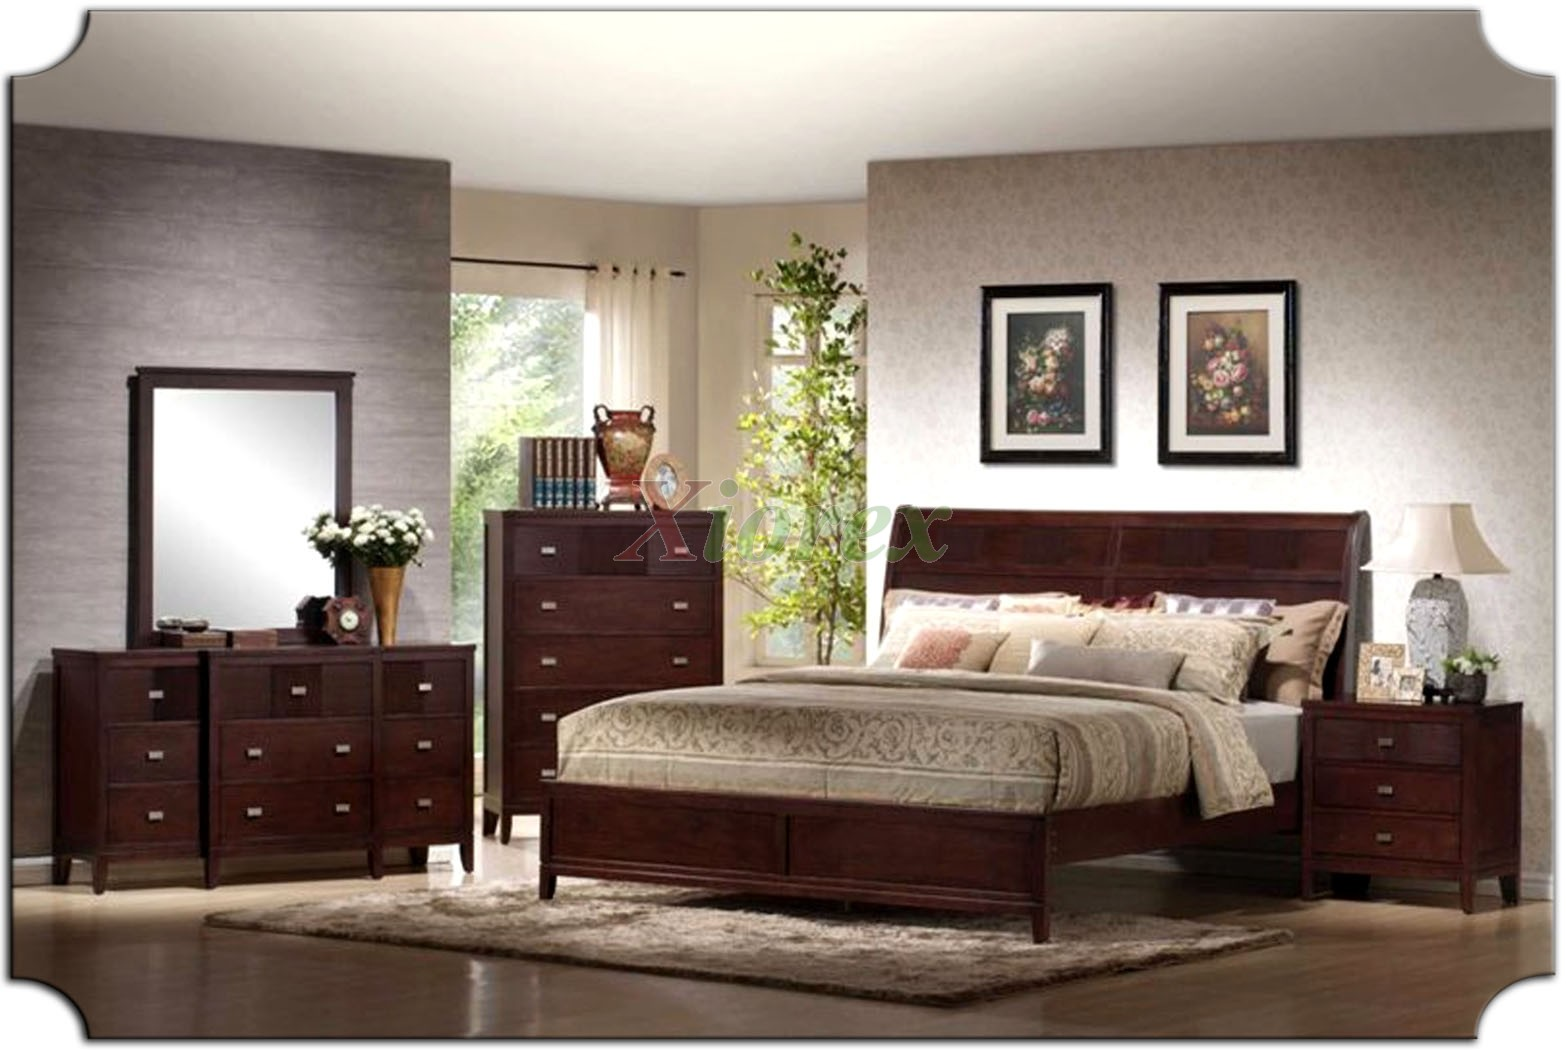 Platform bedroom furniture set with curved headboard beds for Furniture bedroom furniture